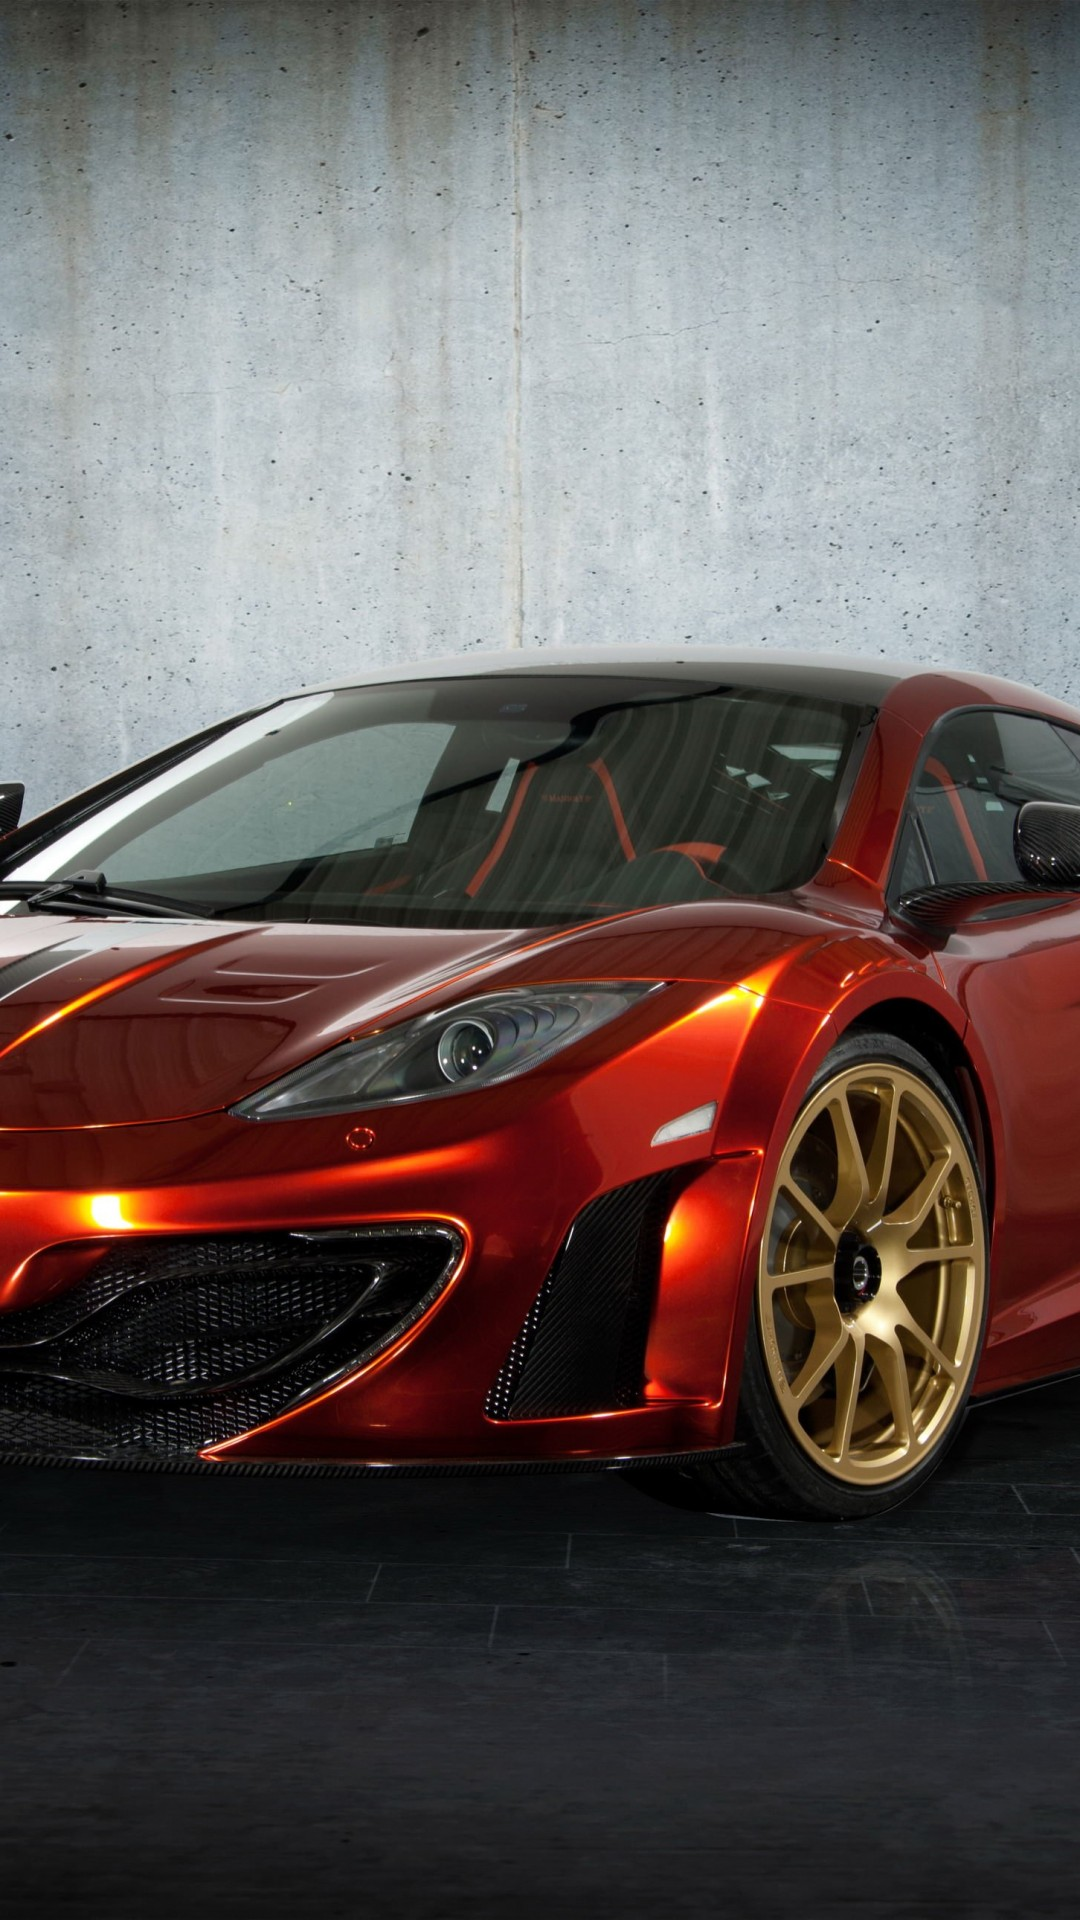 McLaren MP4-12Cf By Mansory Wallpaper for SAMSUNG Galaxy S5